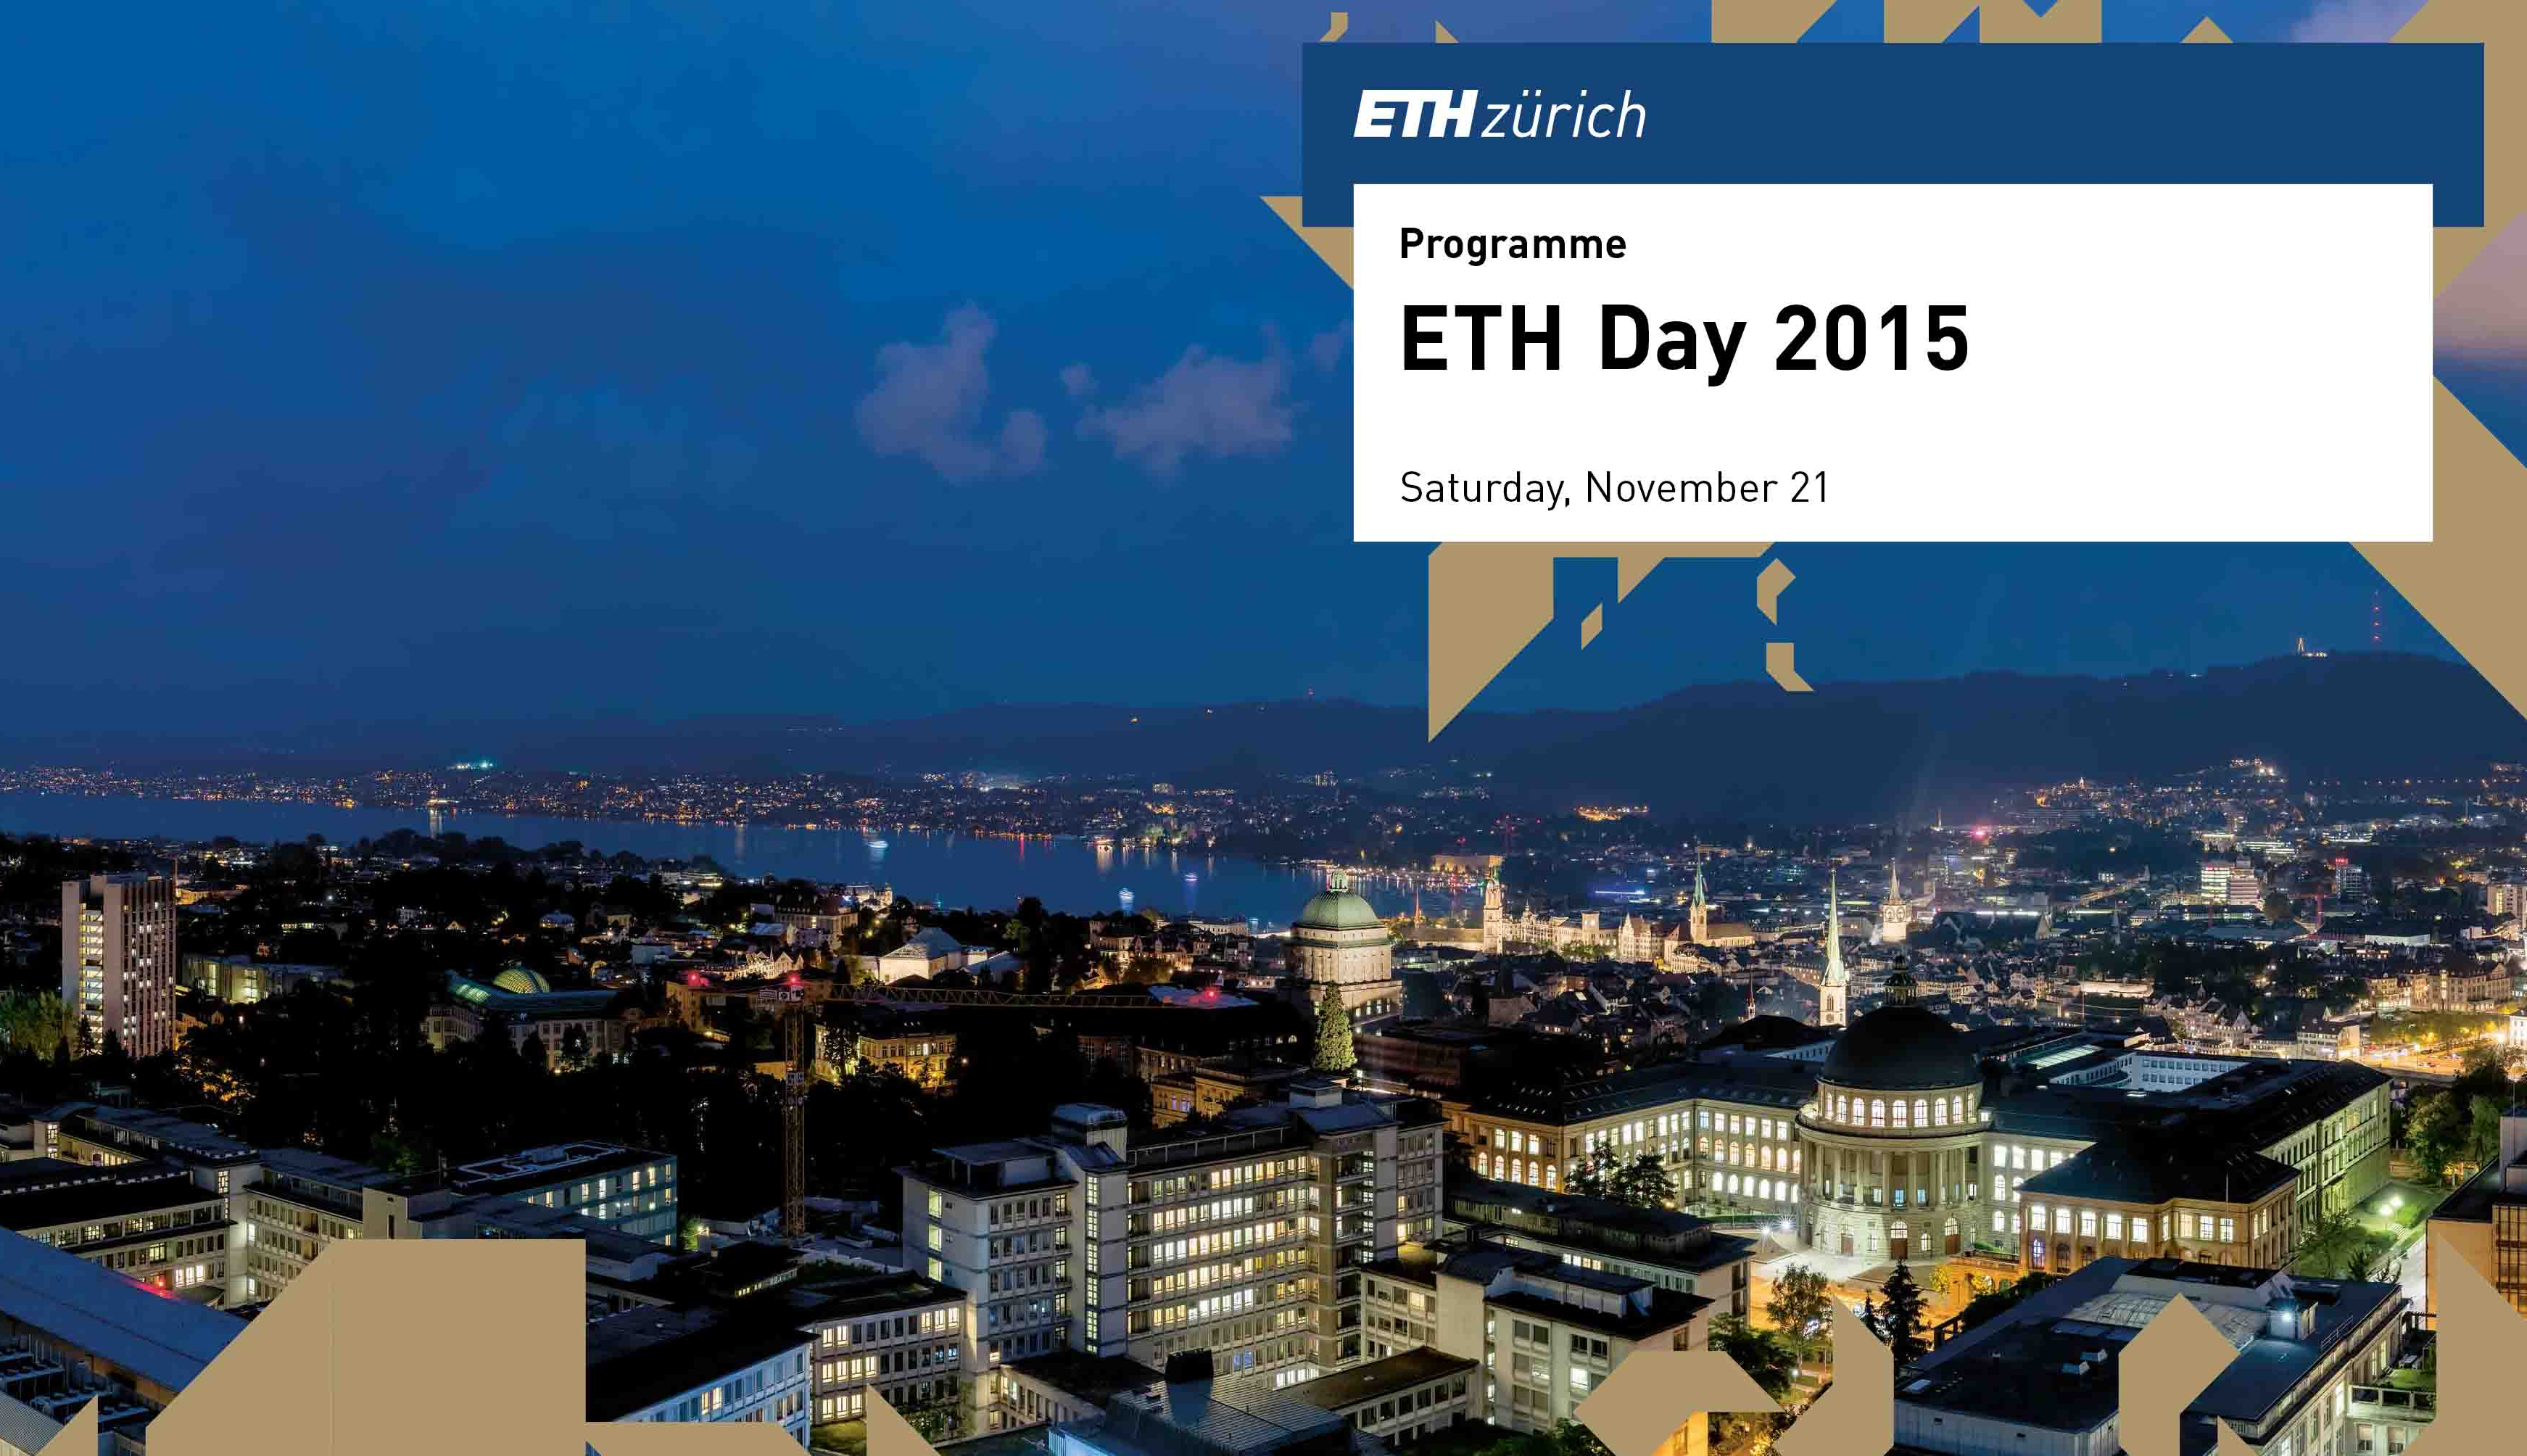 eth dissertation library Eth library is the largest public scientific and technical library in switzerland eth library helps members of eth zurich to publish their dissertations.